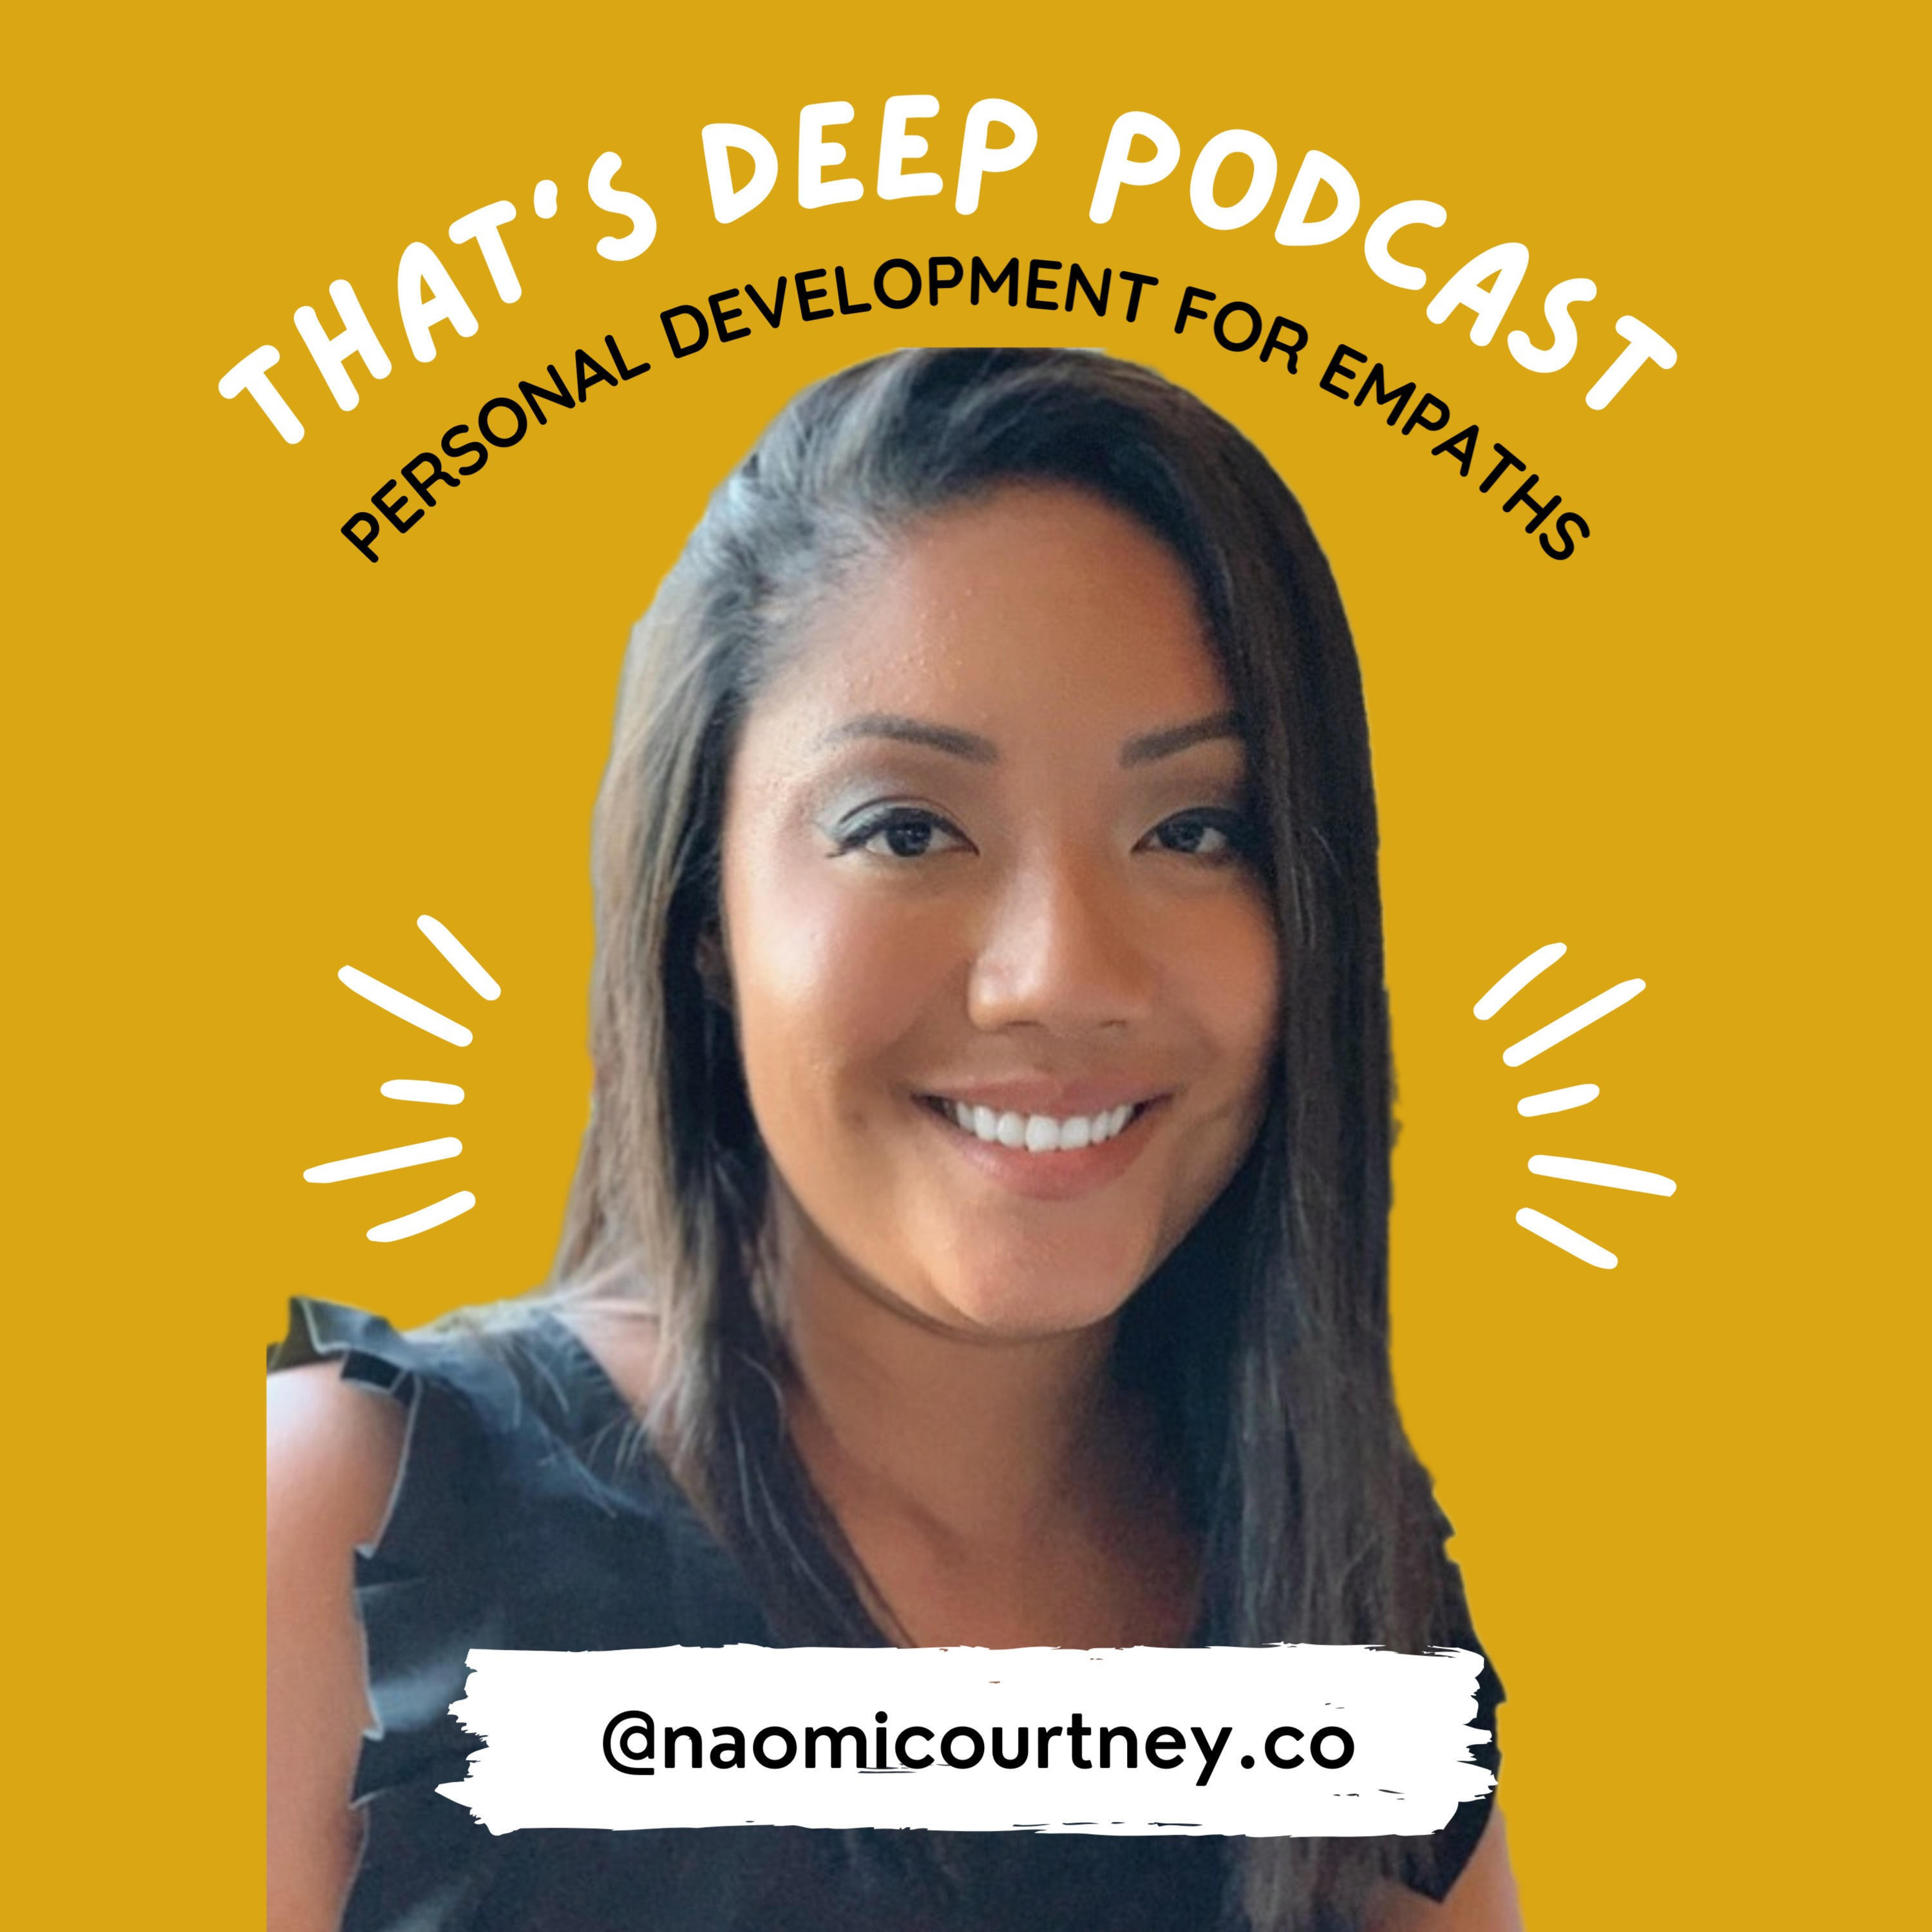 That's Deep Podcast: Personal Development for Empaths